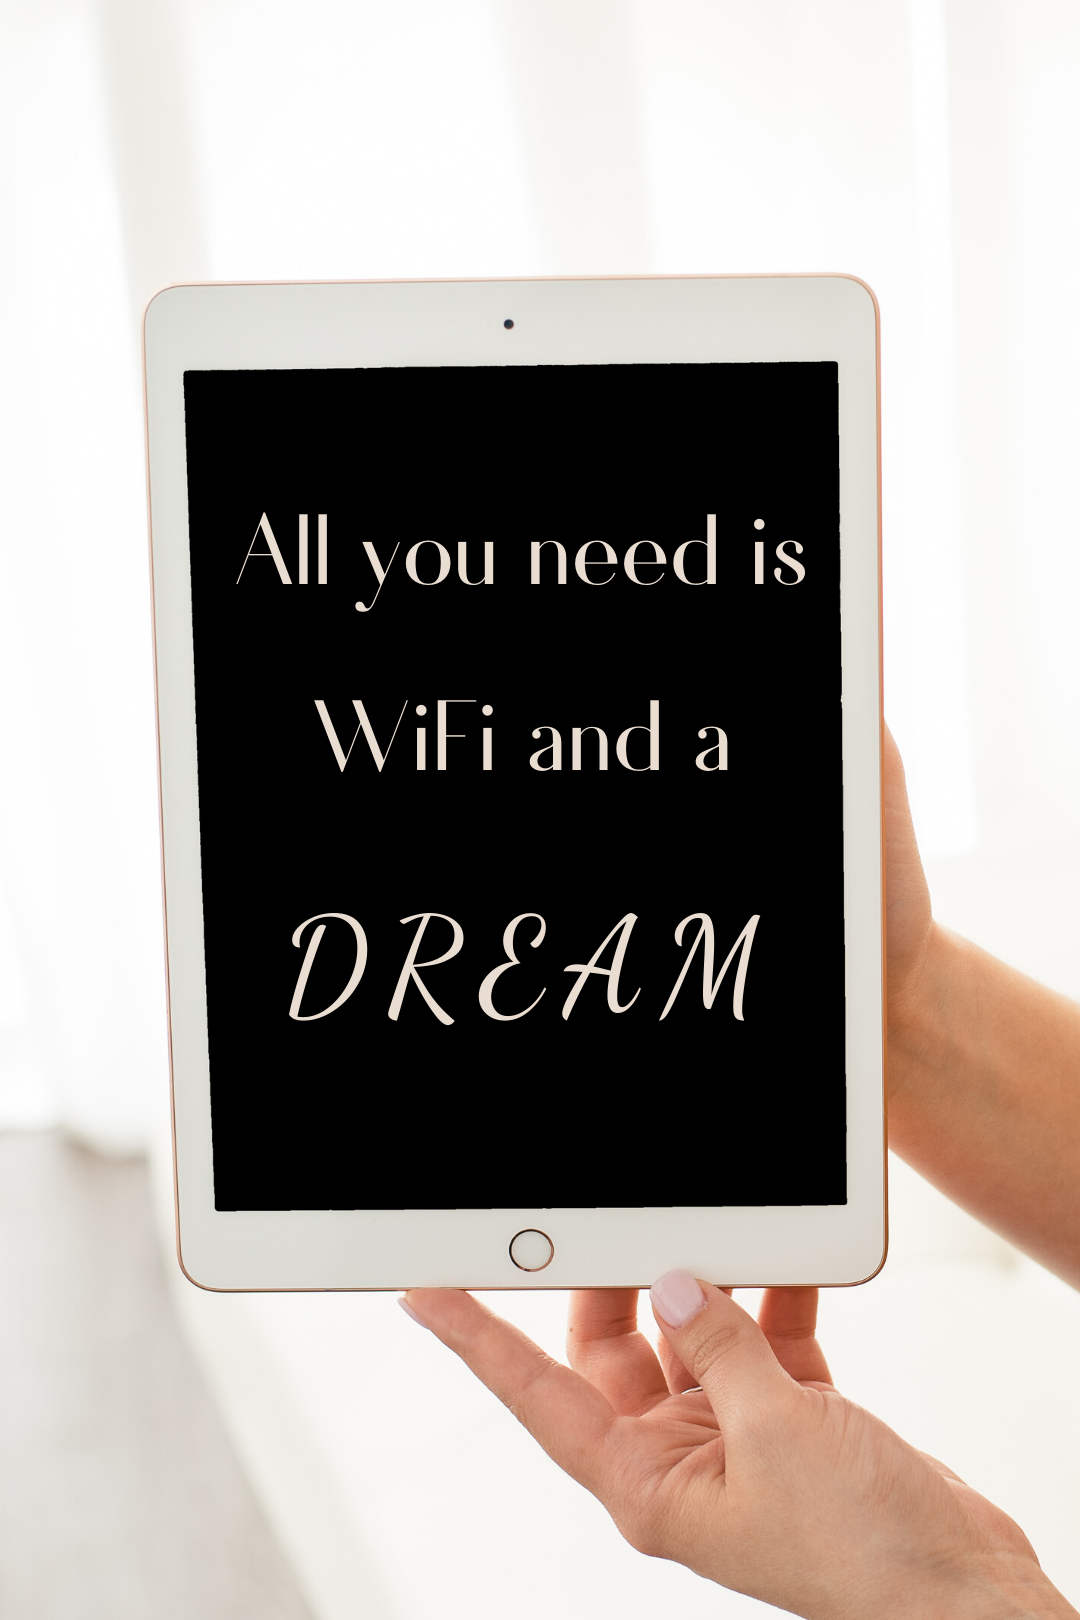 All you need is WiFi and a dream.